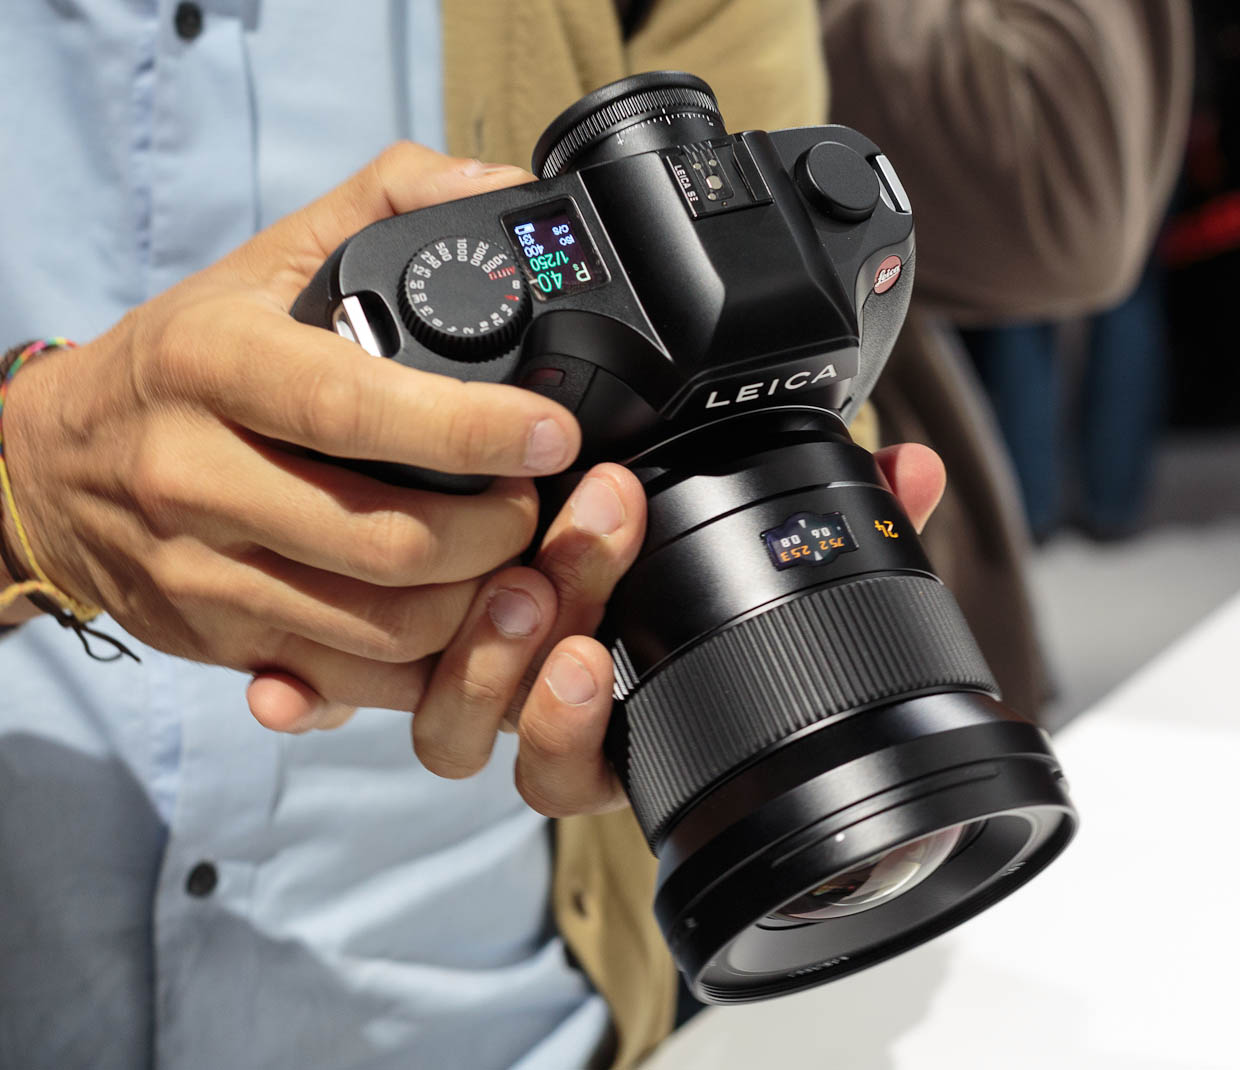 The Leica S is the next flagship model of the German camera maker's attempt to crack the high-end medium-format camera market.